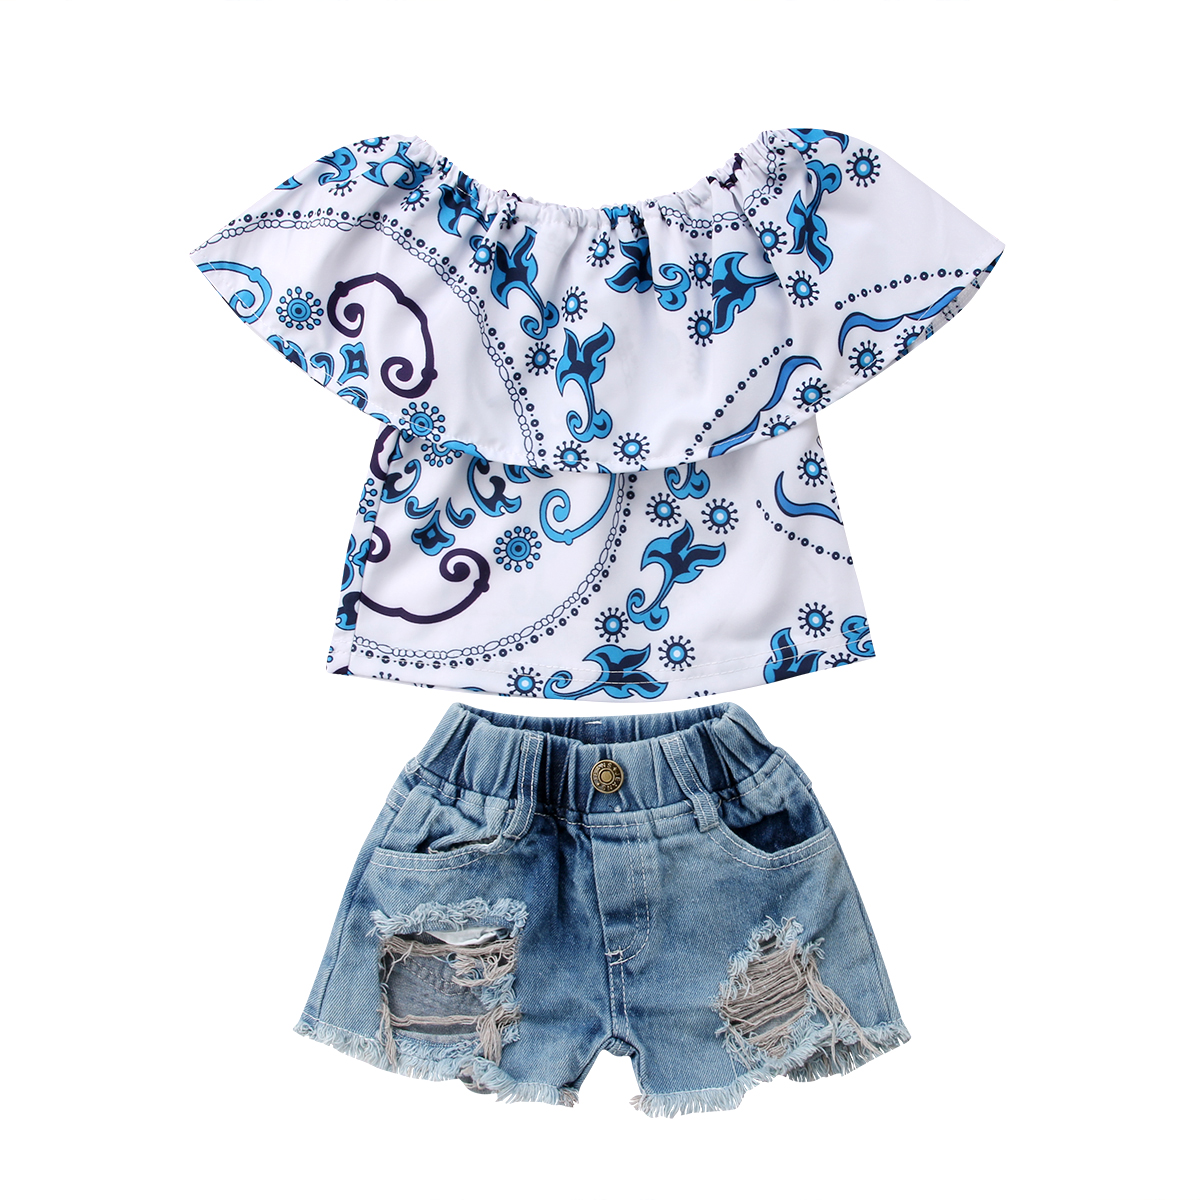 Casual Canis Kids Baby Girl Top T-shirt Ripped Jeans Denim Shorts Casual Outfits Set